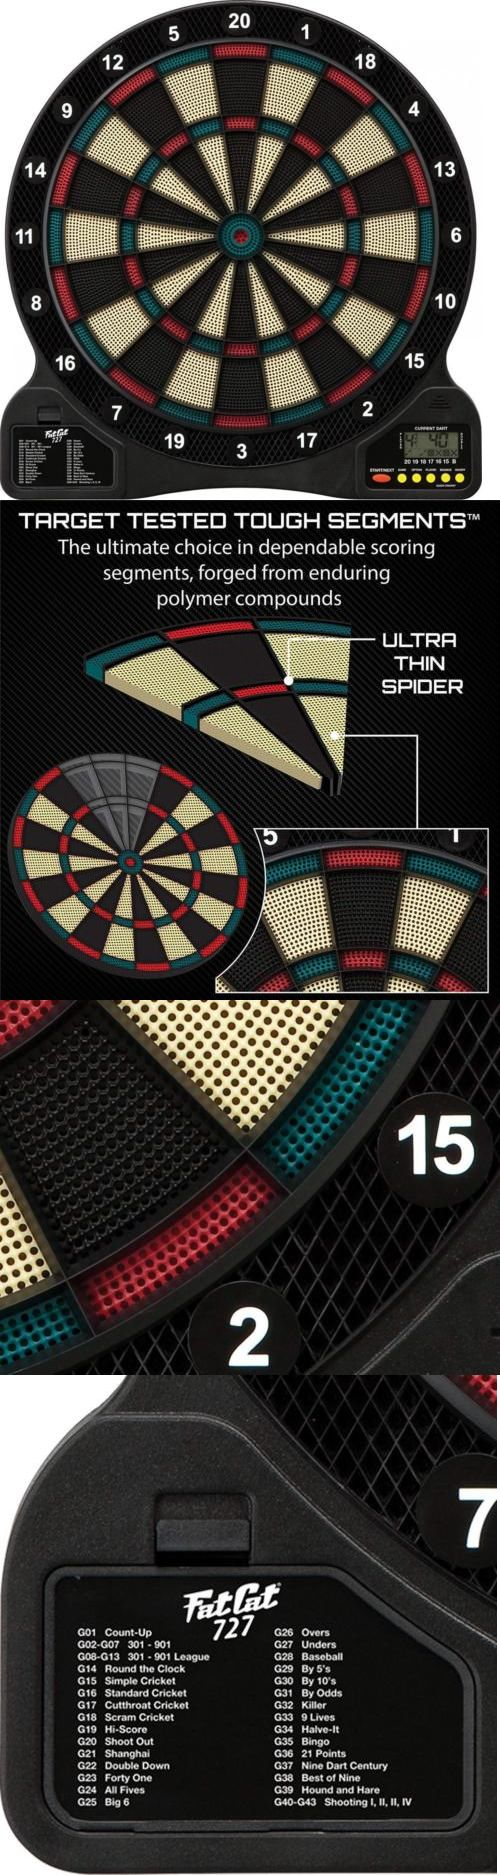 Dart Boards 72576 Fat Cat 727 Electronic Soft Tip Dartboard Buy